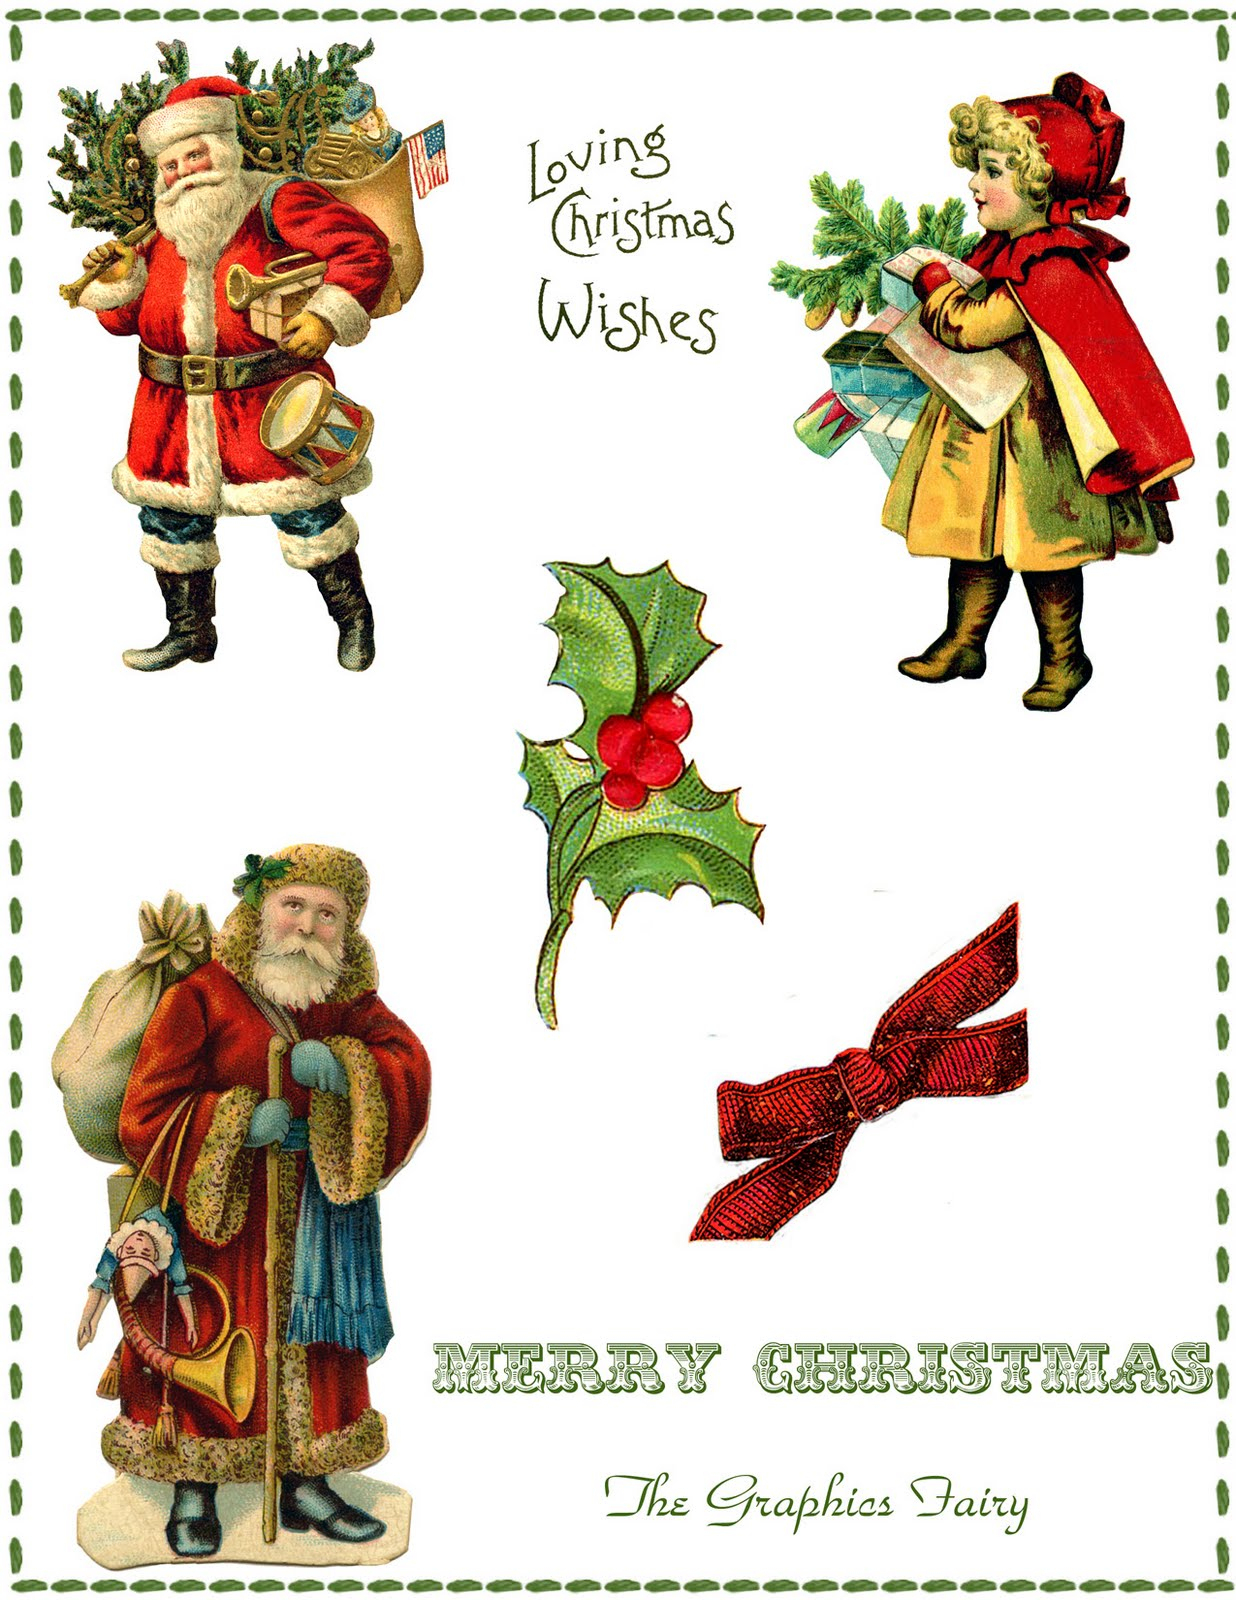 Digital Collage Sheets Archives - The Graphics Fairy - Free Printable Christmas Photo Collage